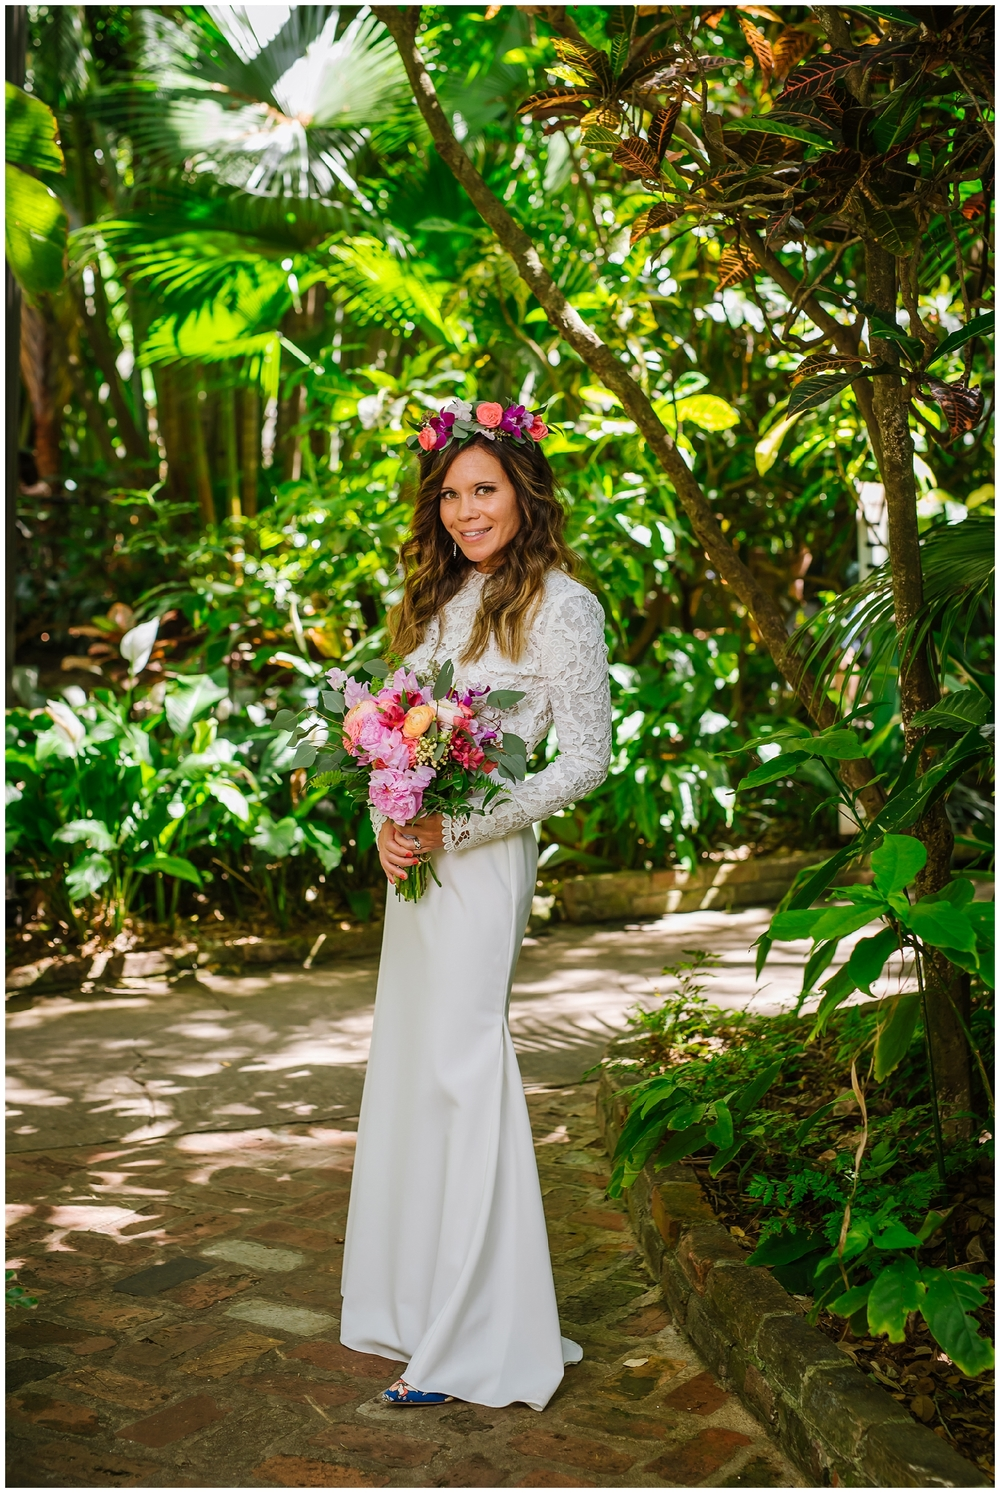 st-pete-wedding-photographer-flower-crown-sunken-gardens-post-card-inn_0044.jpg